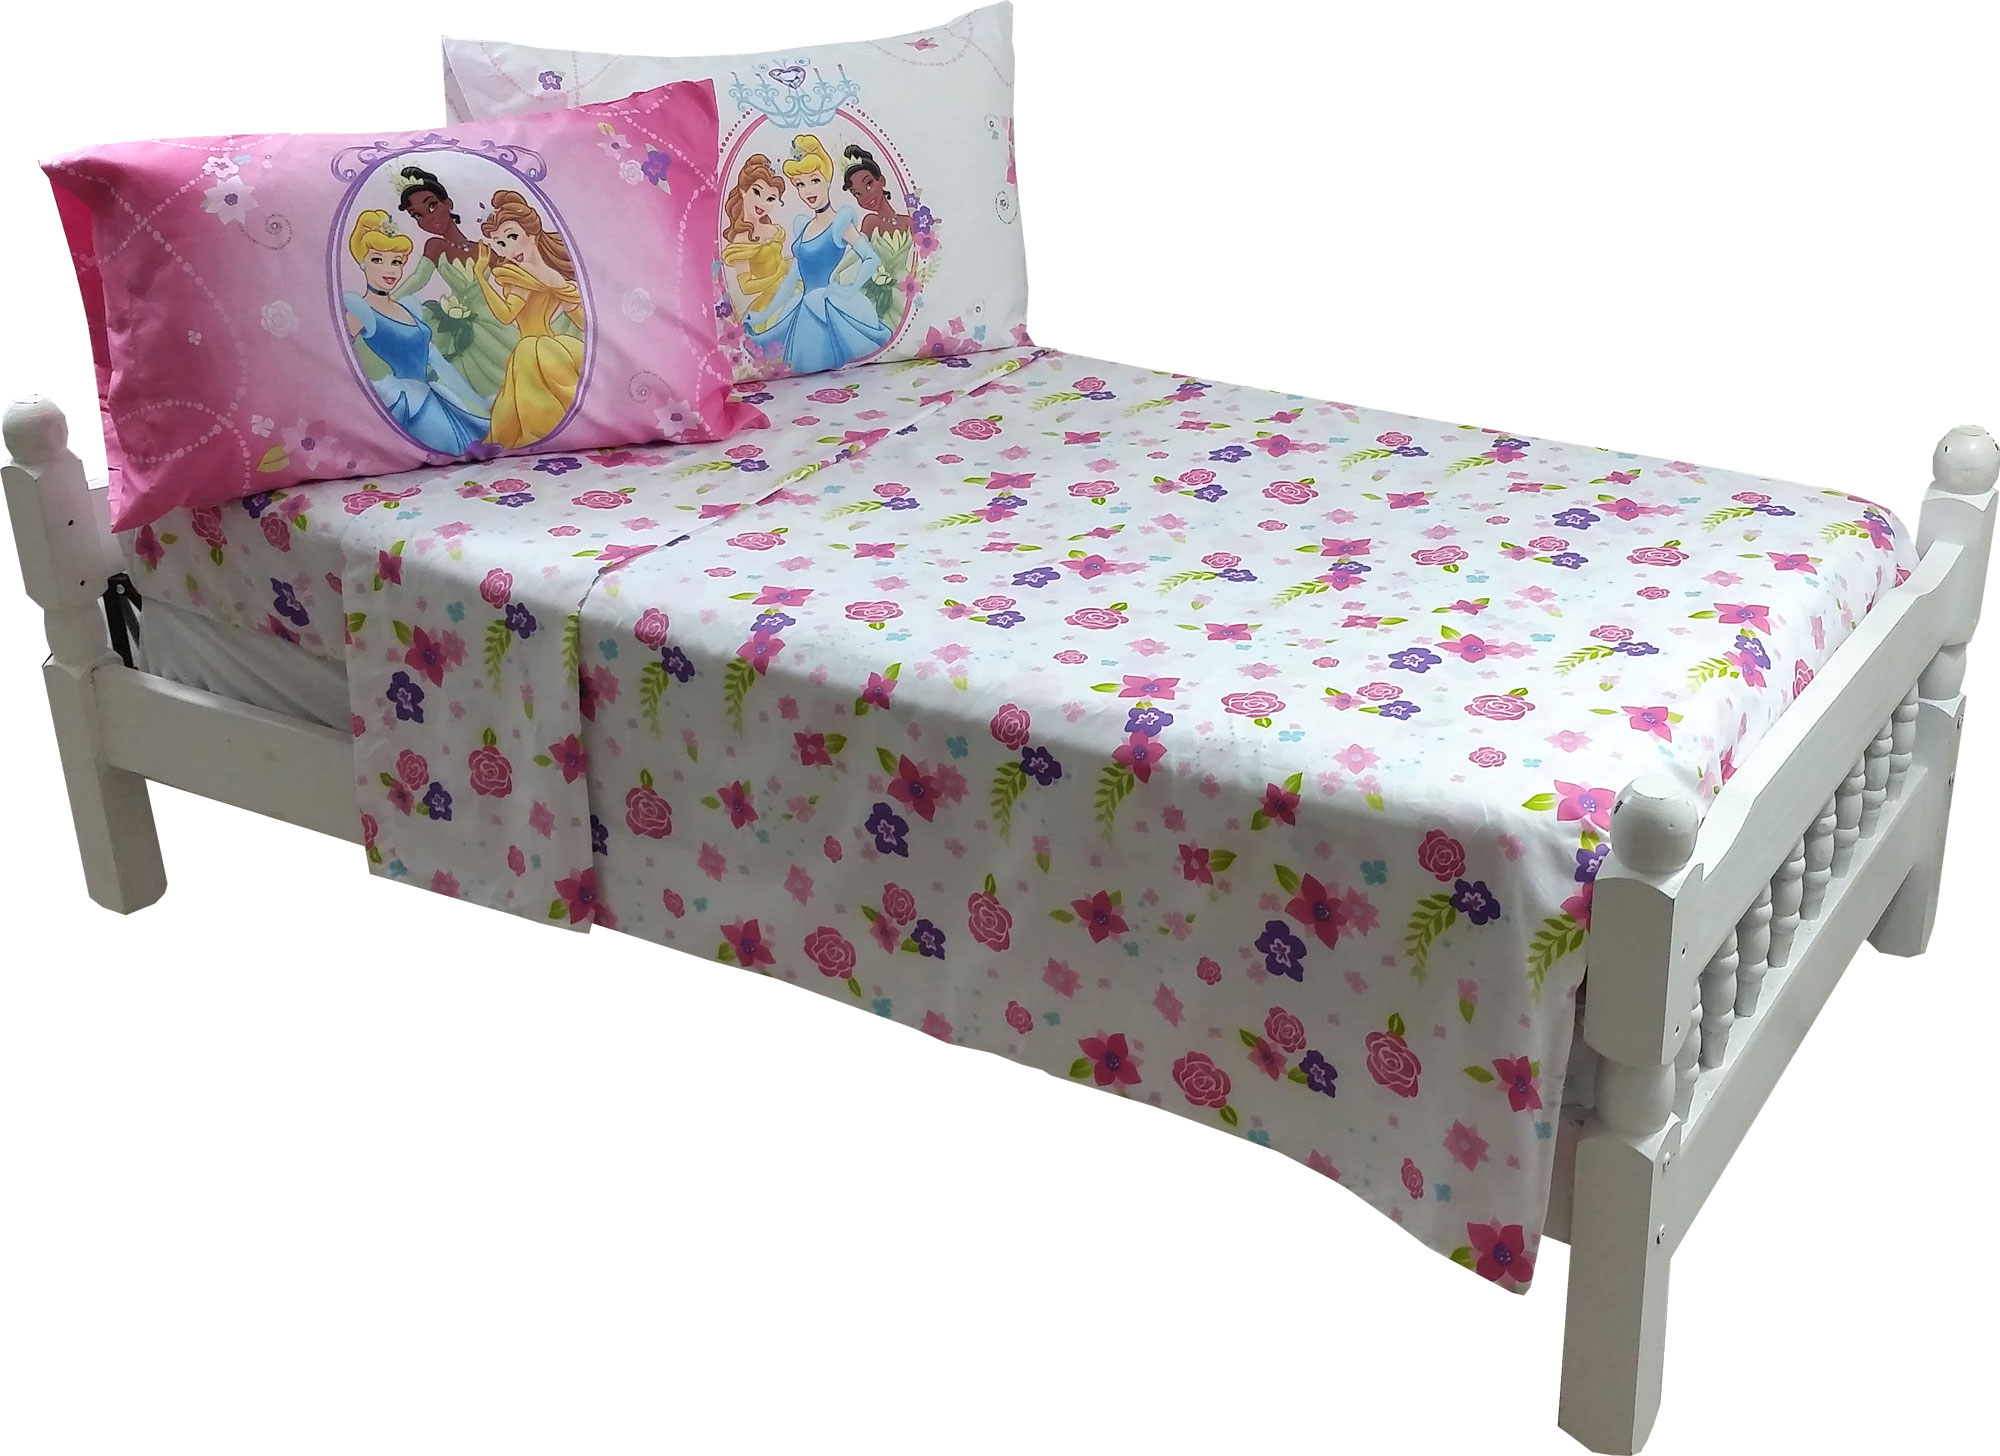 Disney Princess Bed Sheet Set